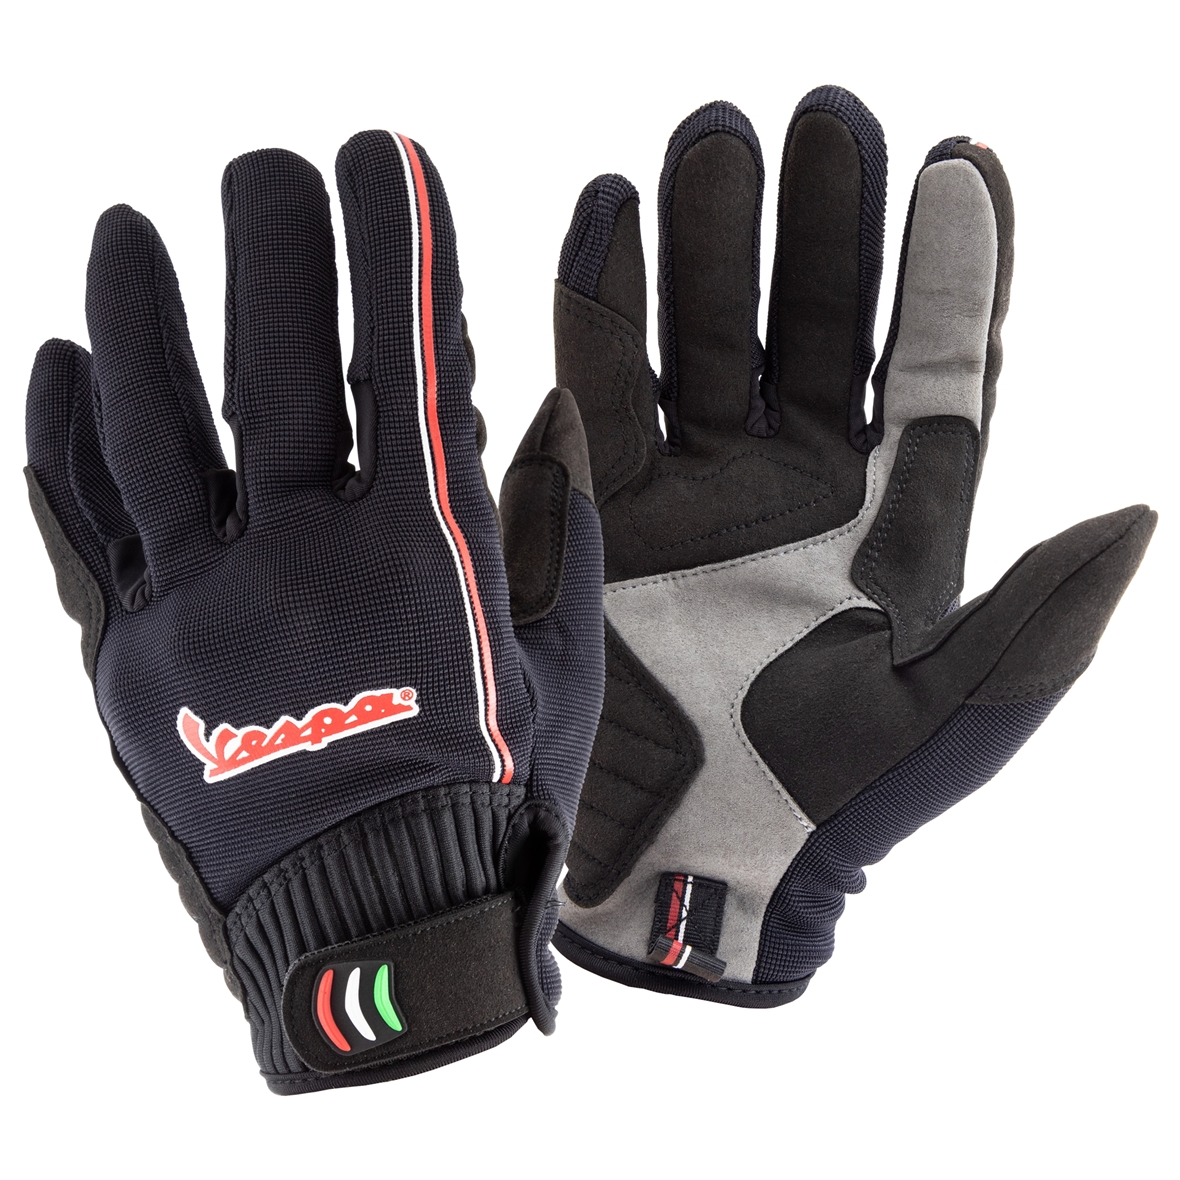 Product Image for 'Gloves PIAGGIO Vespa Modernist size XLTitle'